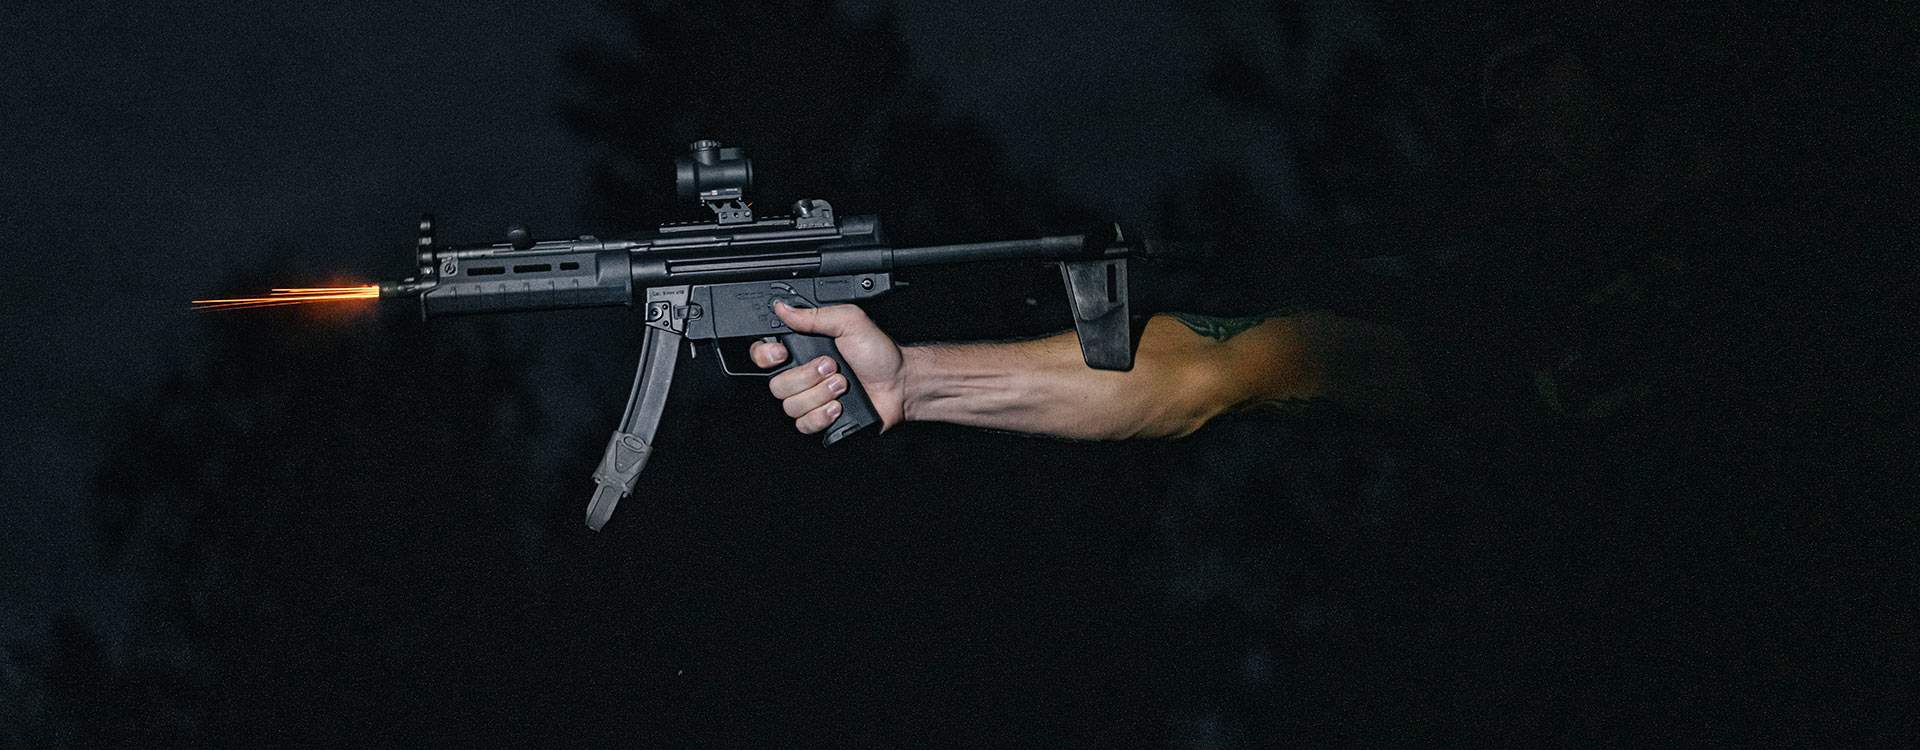 MP5 with Magpul BSL HK94/MP5 Arm Brace being fired with one hand in a dark room, with sparks shooting out barrel